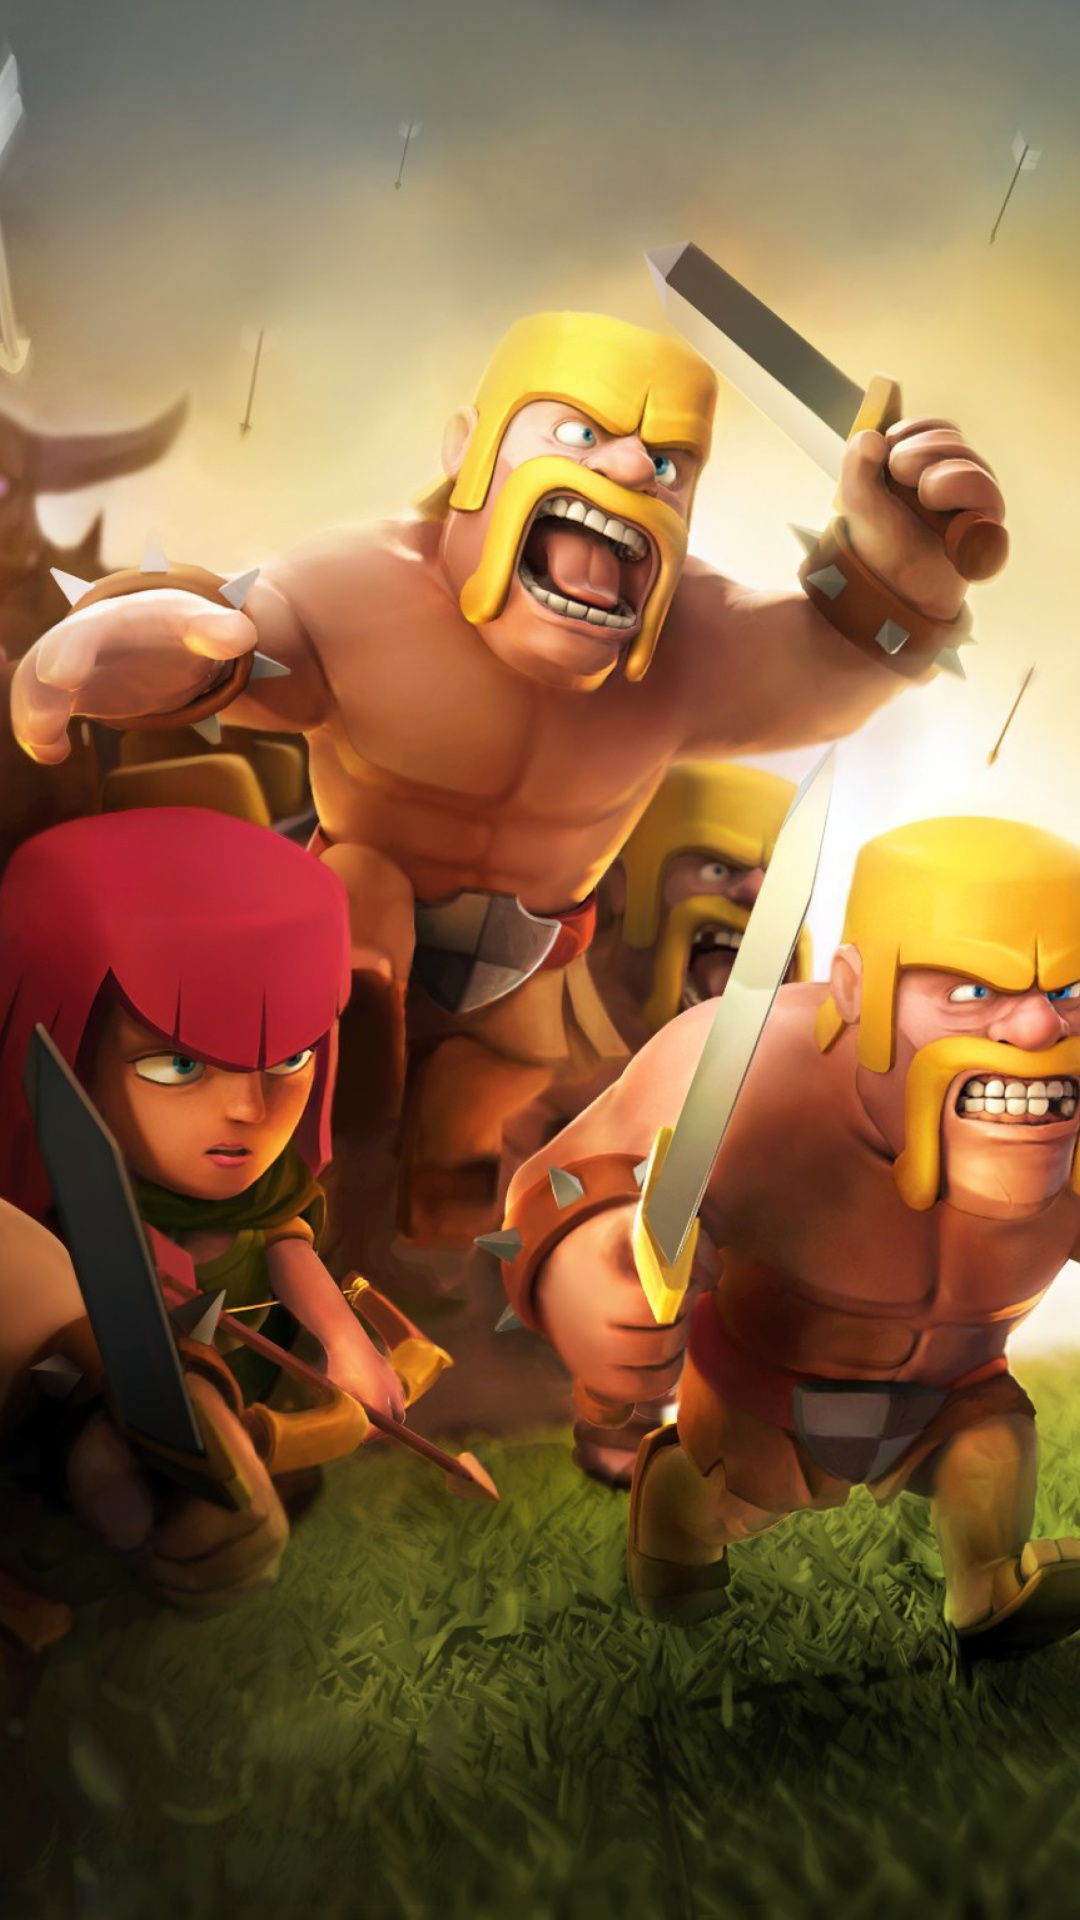 Clash Of Clans Iphone Wallpapers